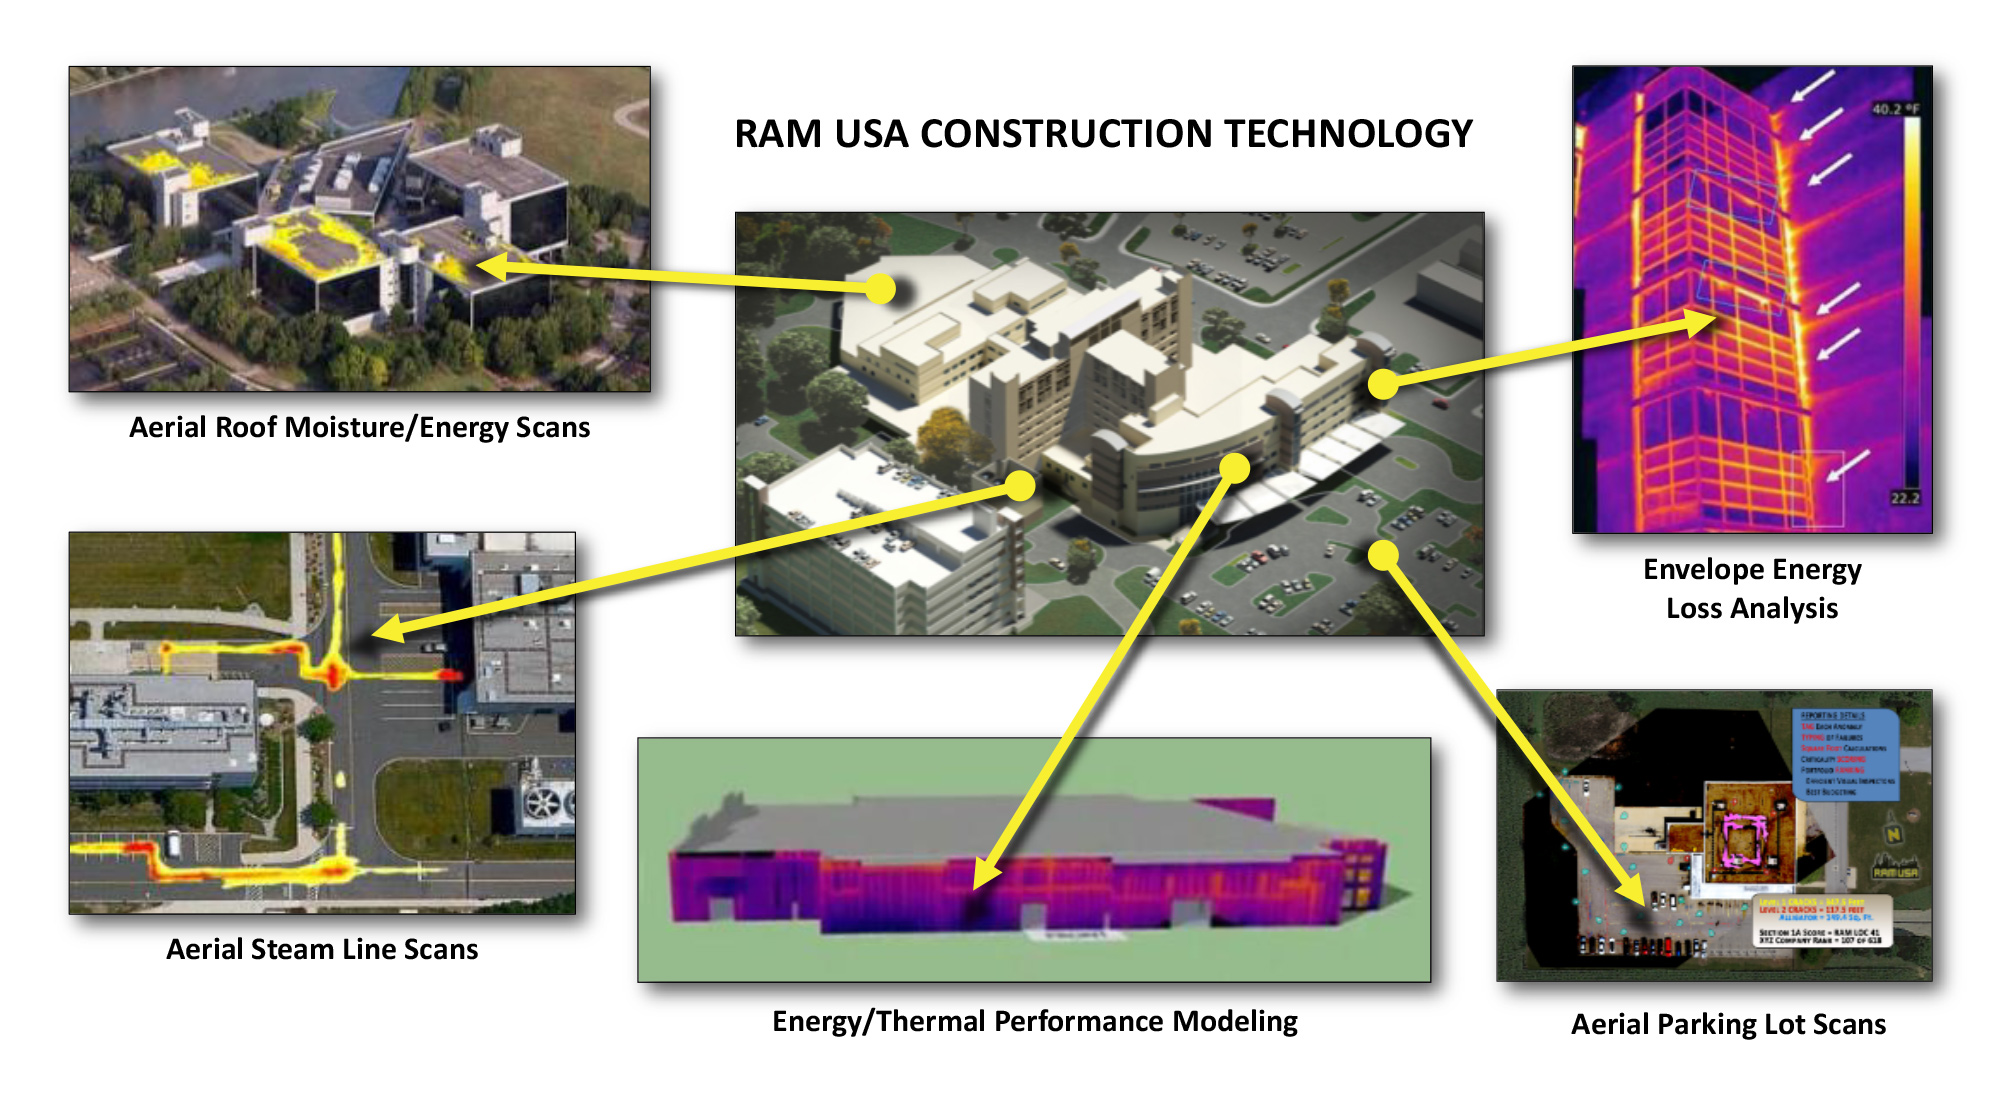 RAM USA Construction Technology